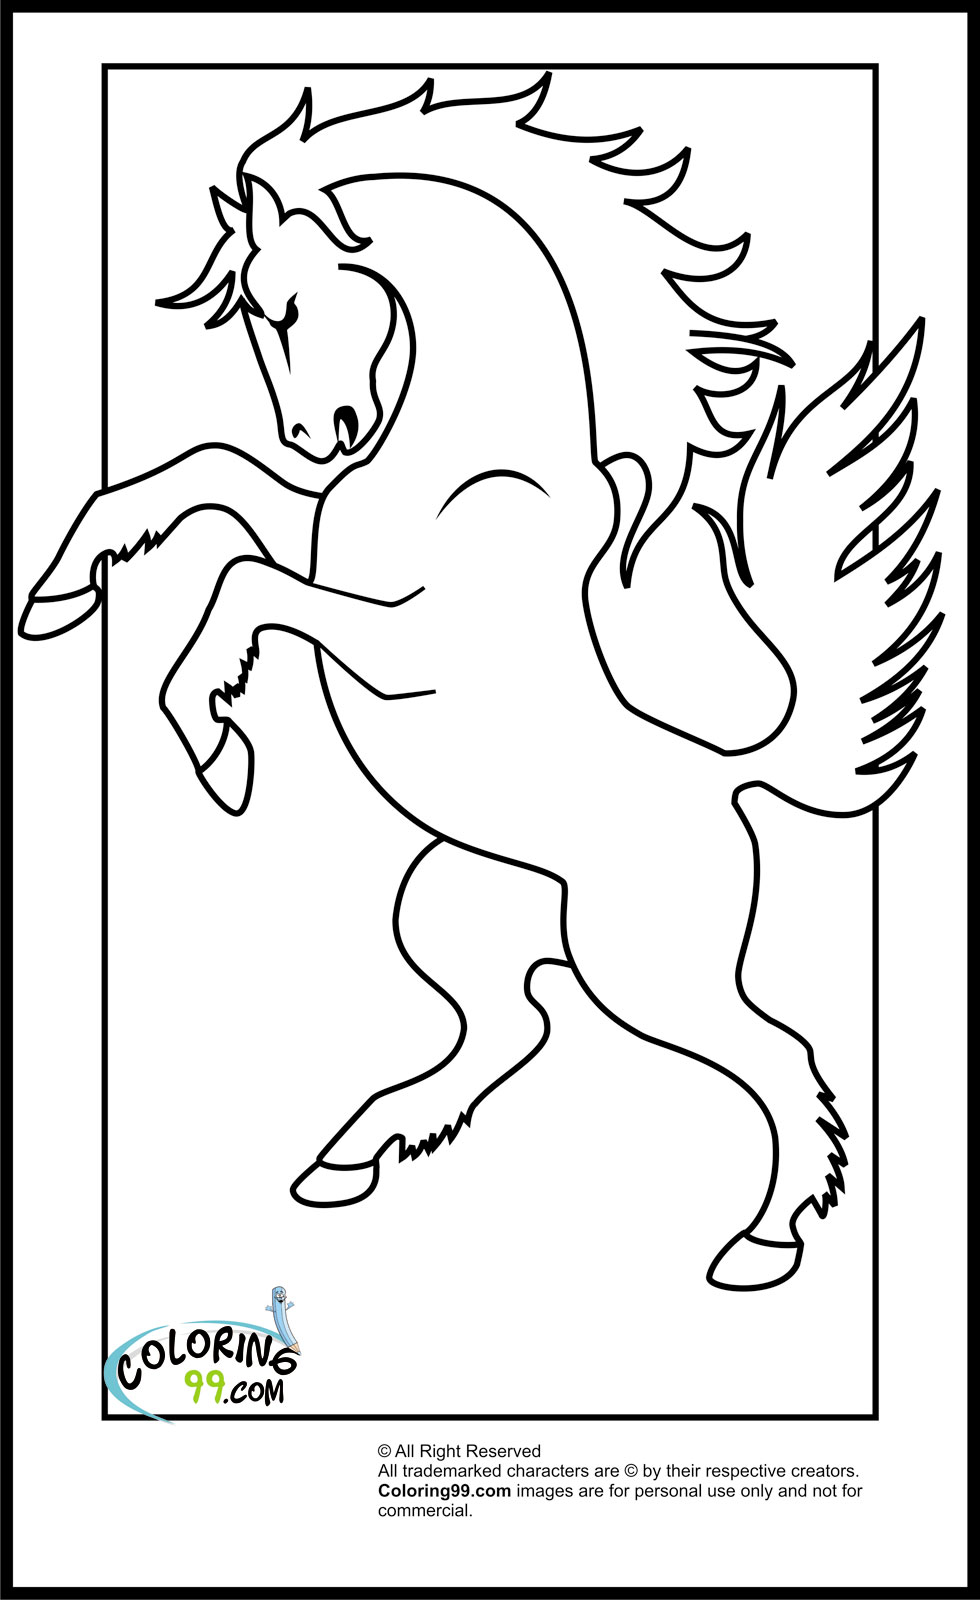 Horse Coloring Pages | Team colors